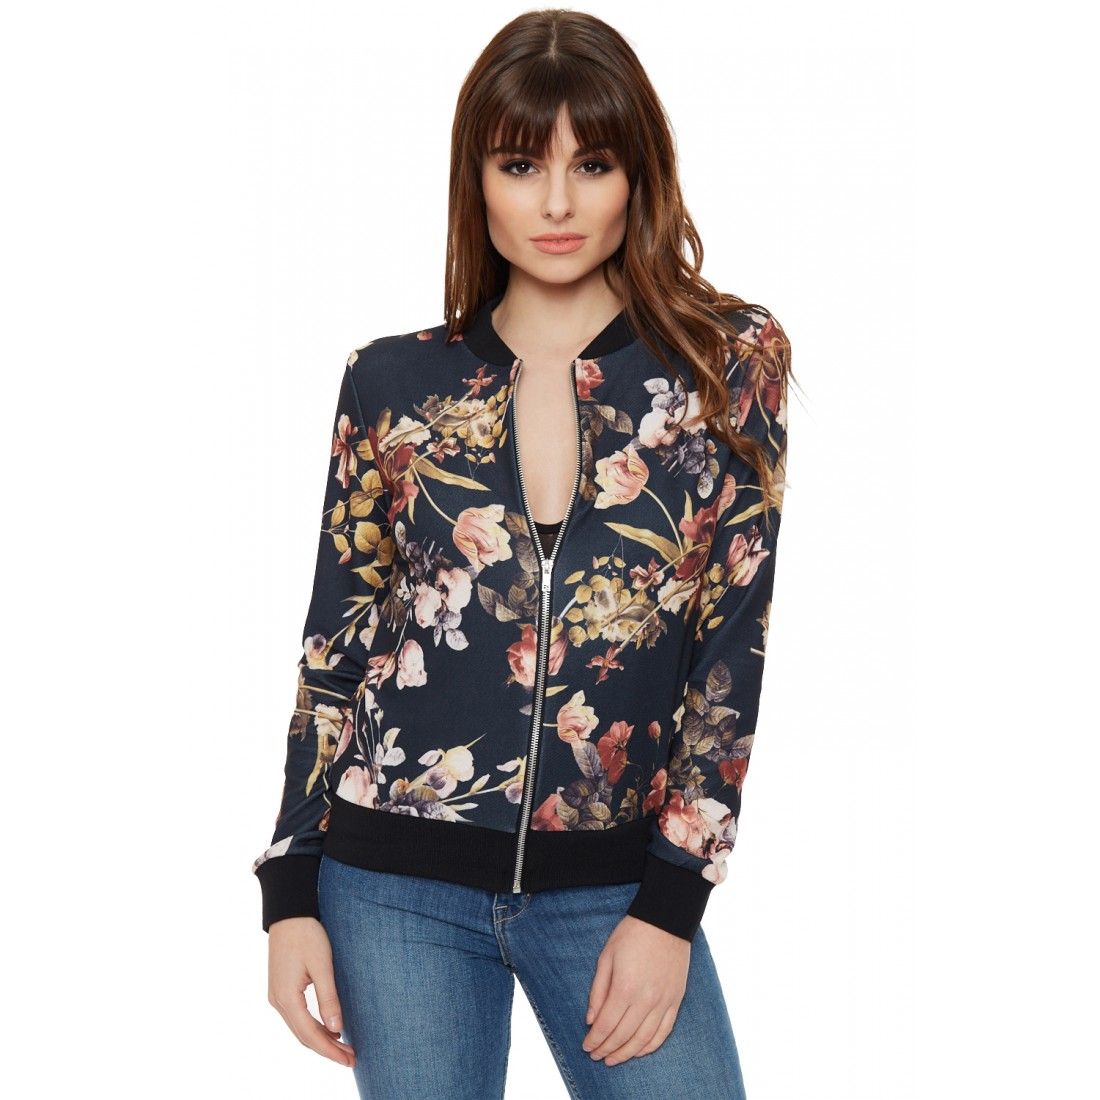 Floral Bomber Jacket Womens - JacketIn